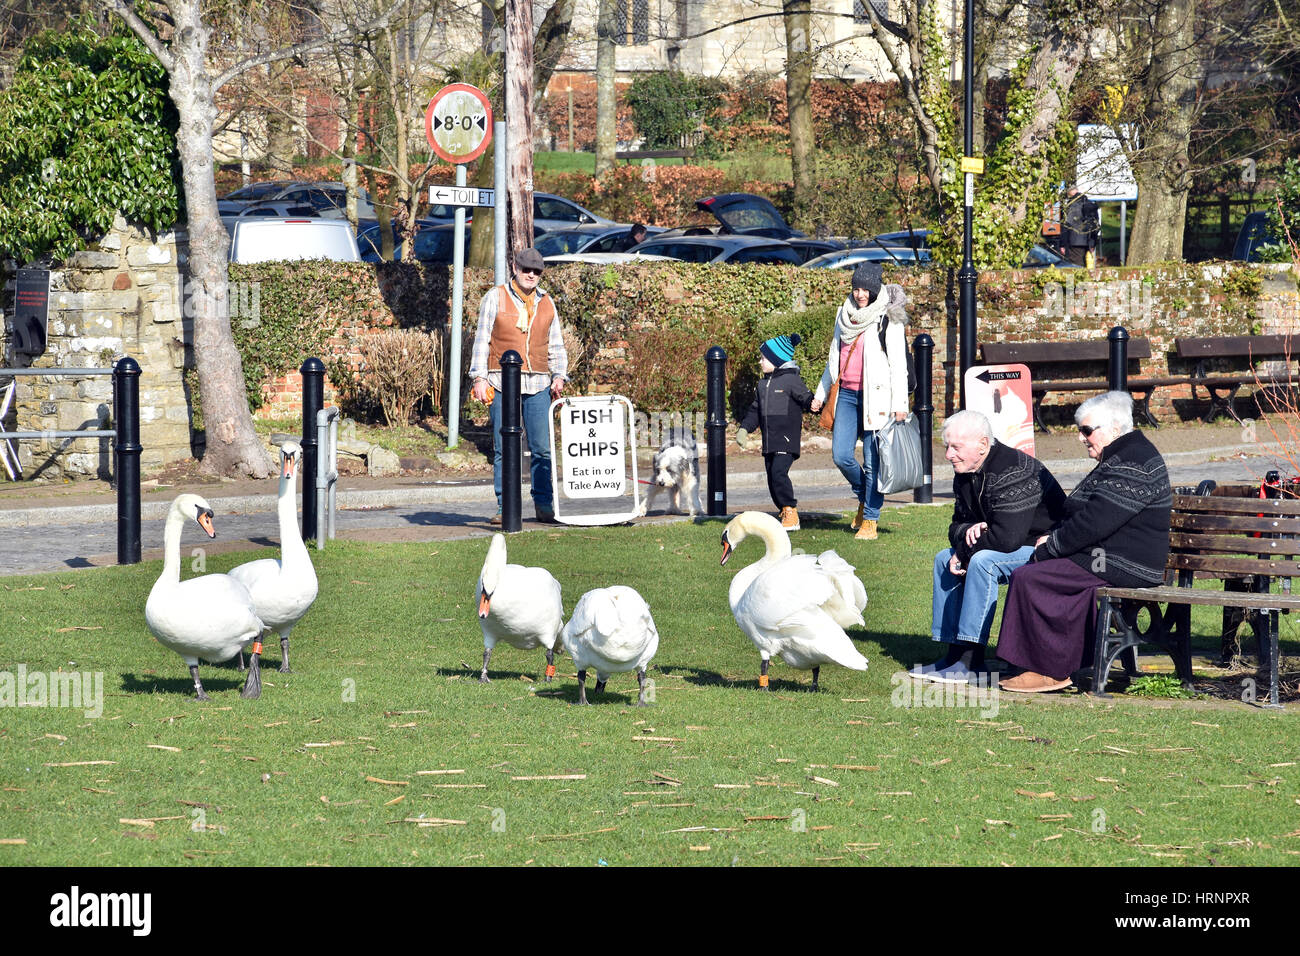 Swans on park at Christchurch harbour in Dorset, England - Stock Image